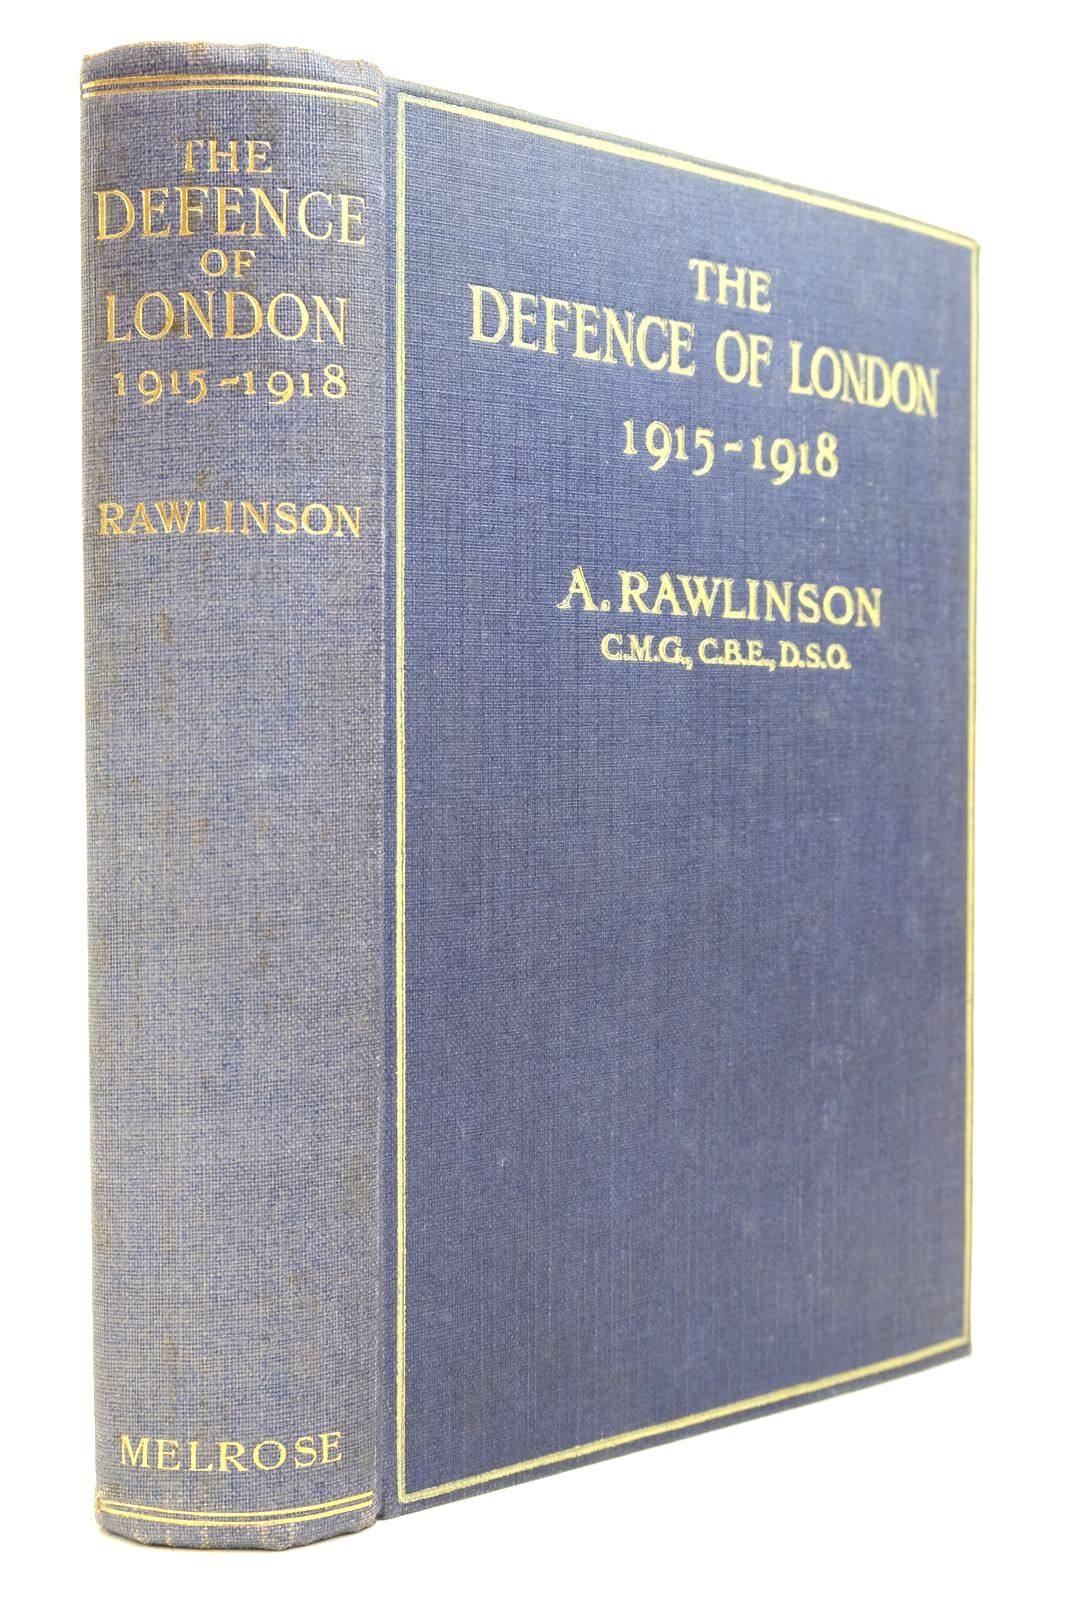 Photo of THE DEFENCE OF LONDON 1915-1918 written by Rawlinson, A. published by Andrew Melrose Ltd. (STOCK CODE: 2134805)  for sale by Stella & Rose's Books